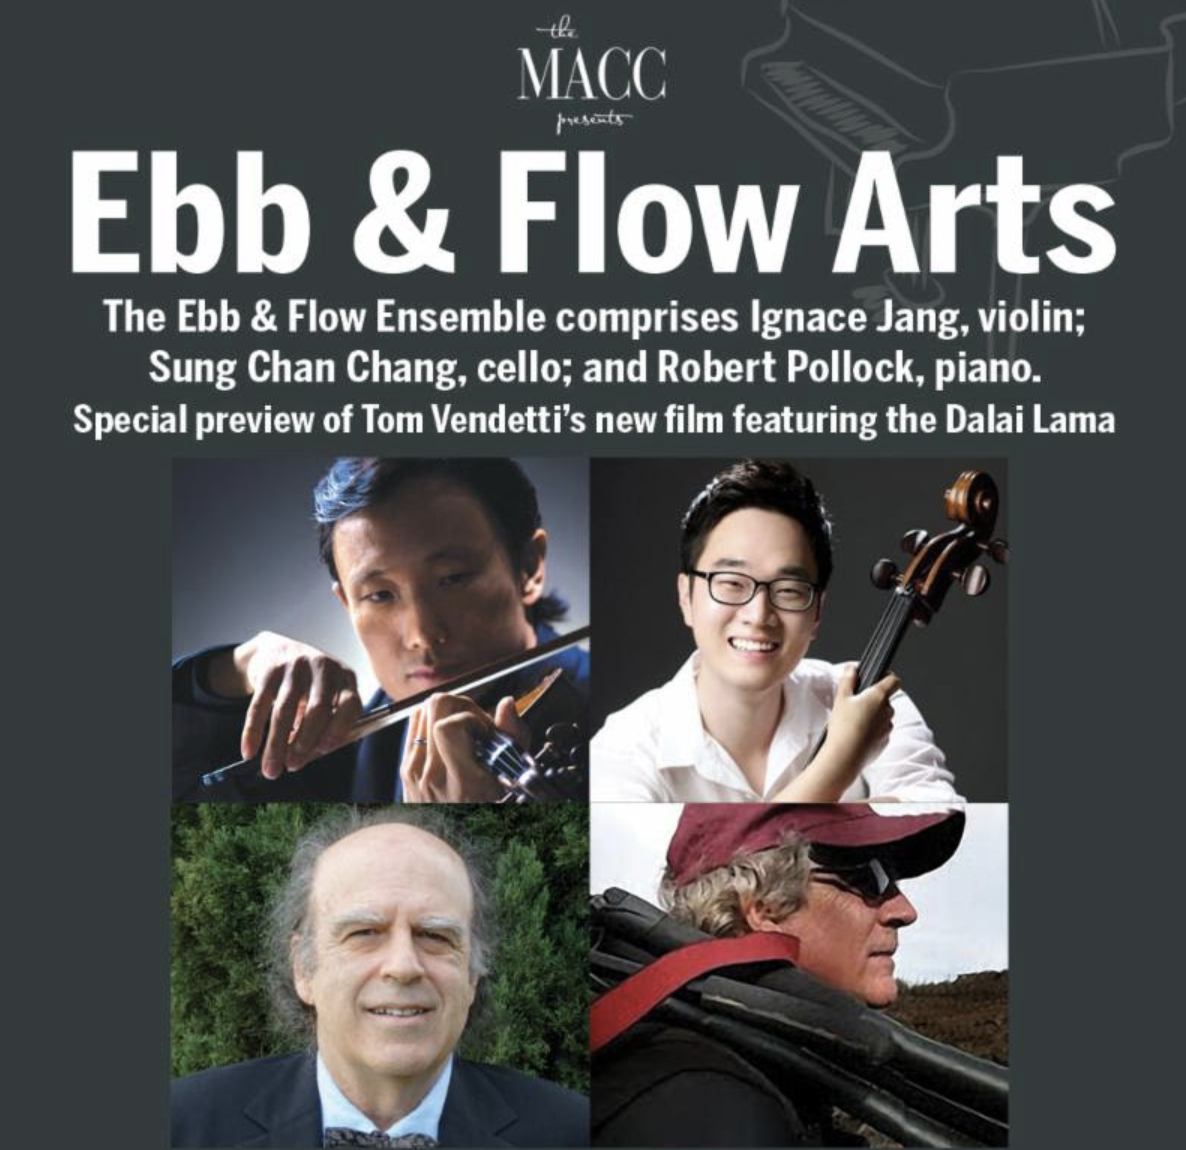 Ebb & Flow Arts 20th Anniversary, March 3